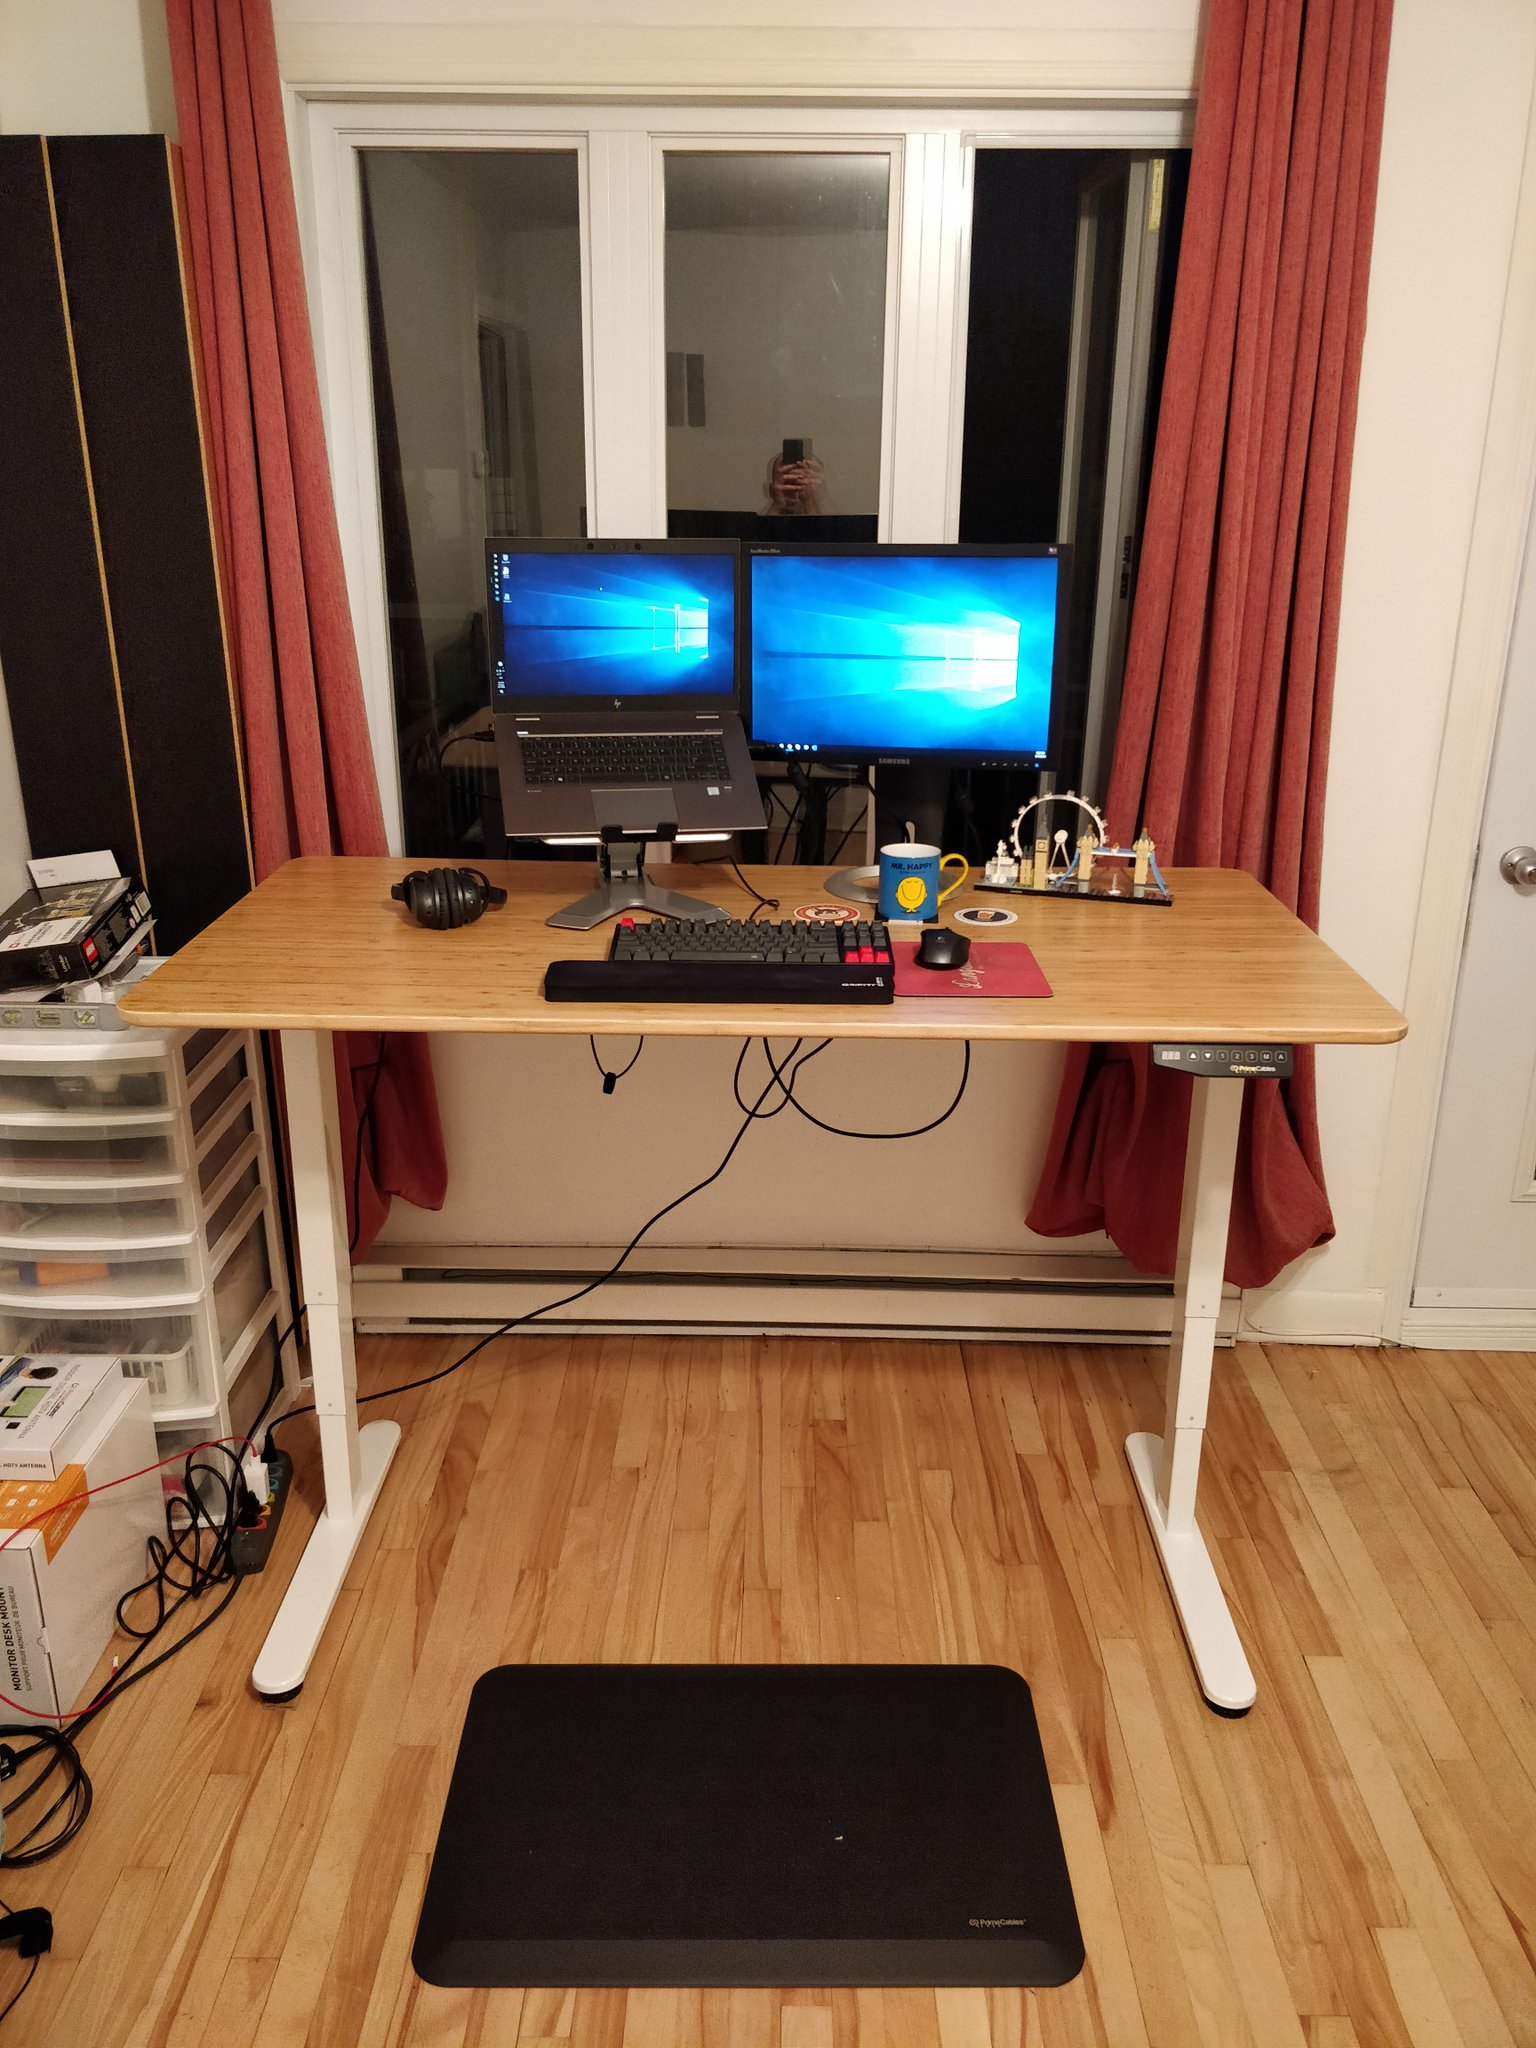 Picture of: Twitter पर Jeff L Heureux The Primecables Dual Motor Because It Lowers To 24 Inches I Put An Ikea Ovraryd Dining Table On Top Https T Co Ilbe6pyxtk Https T Co Buu9o5zexv